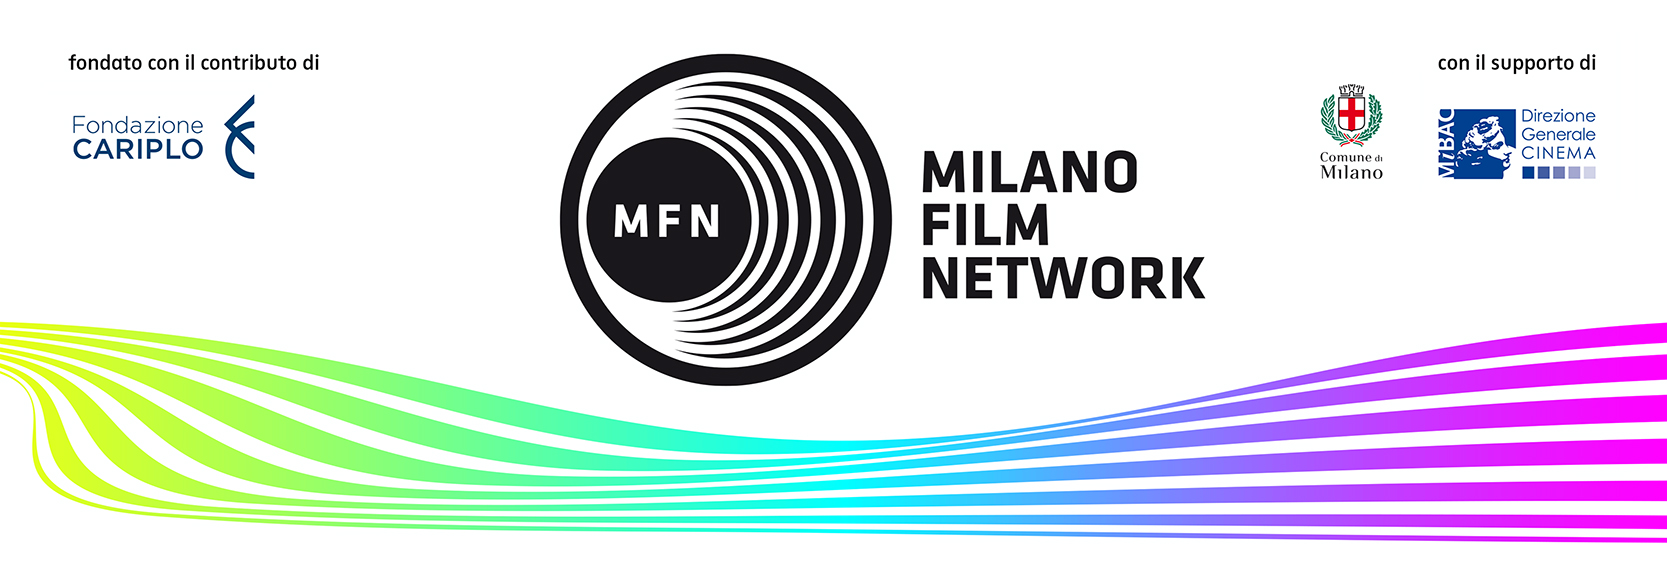 Milano film network -